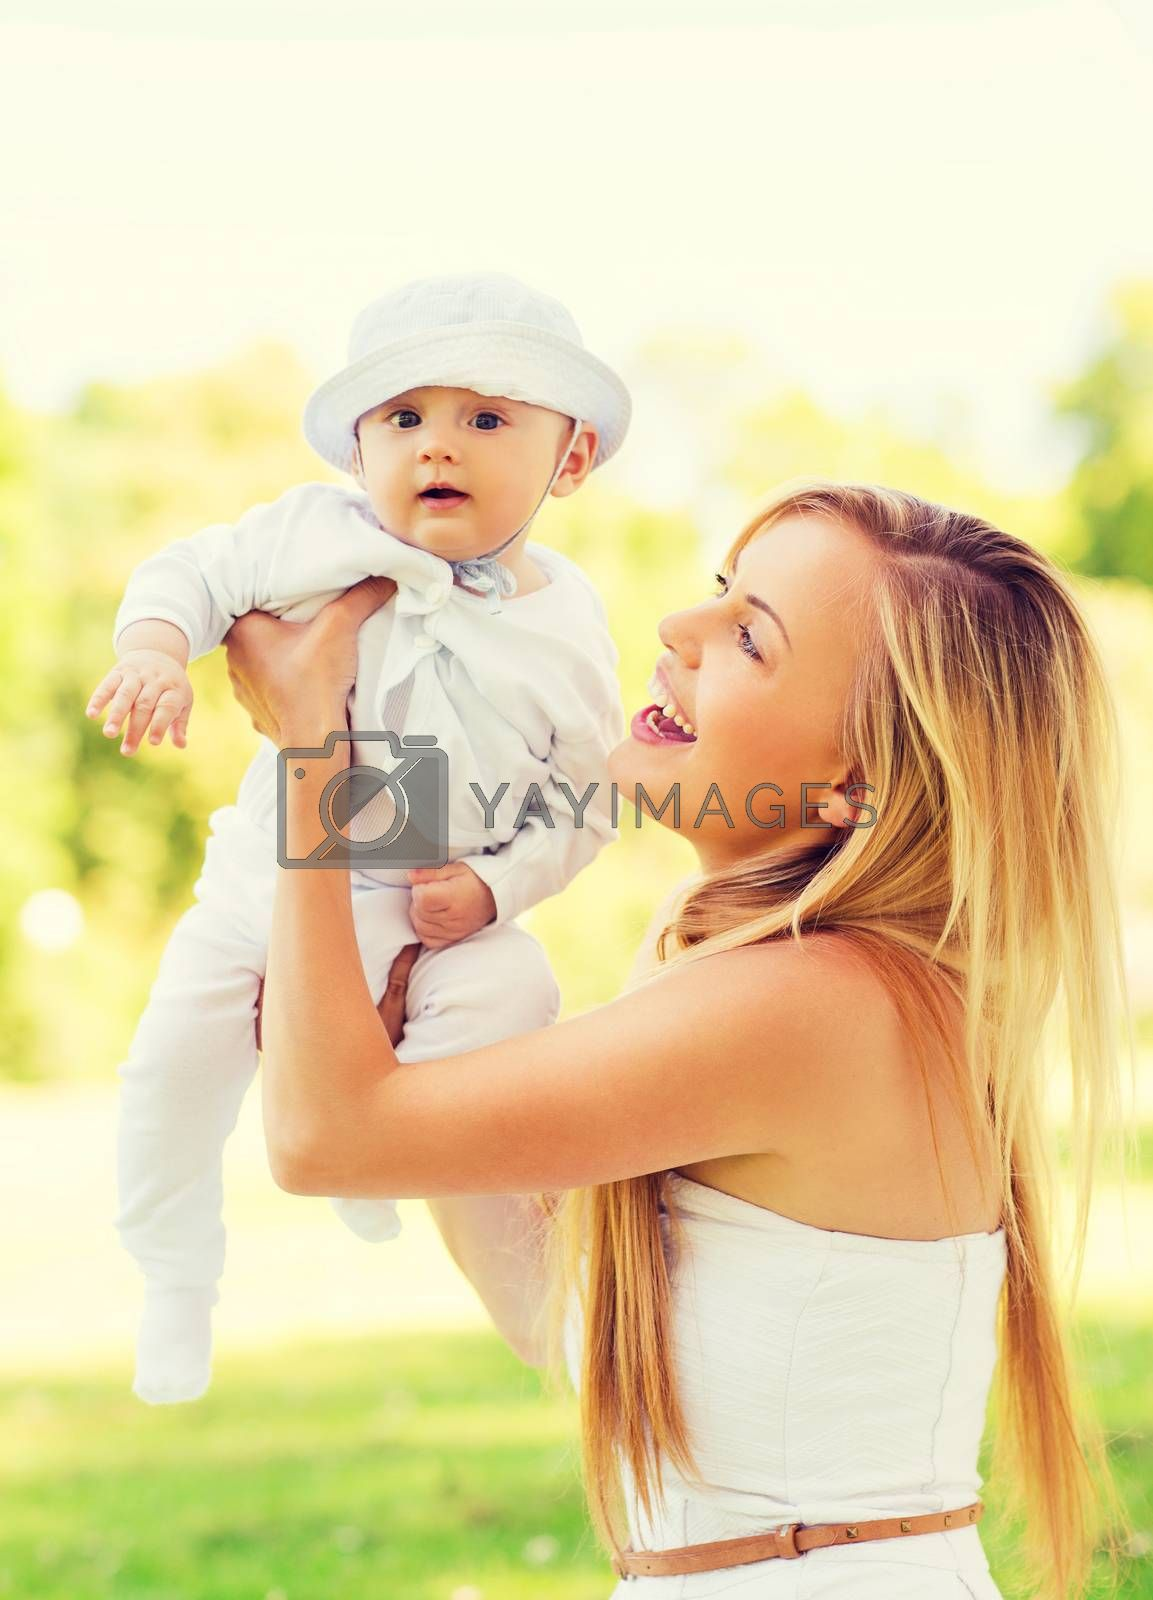 family, child, happiness and motherhood concept - happy mother with little baby sitting on blanket in park